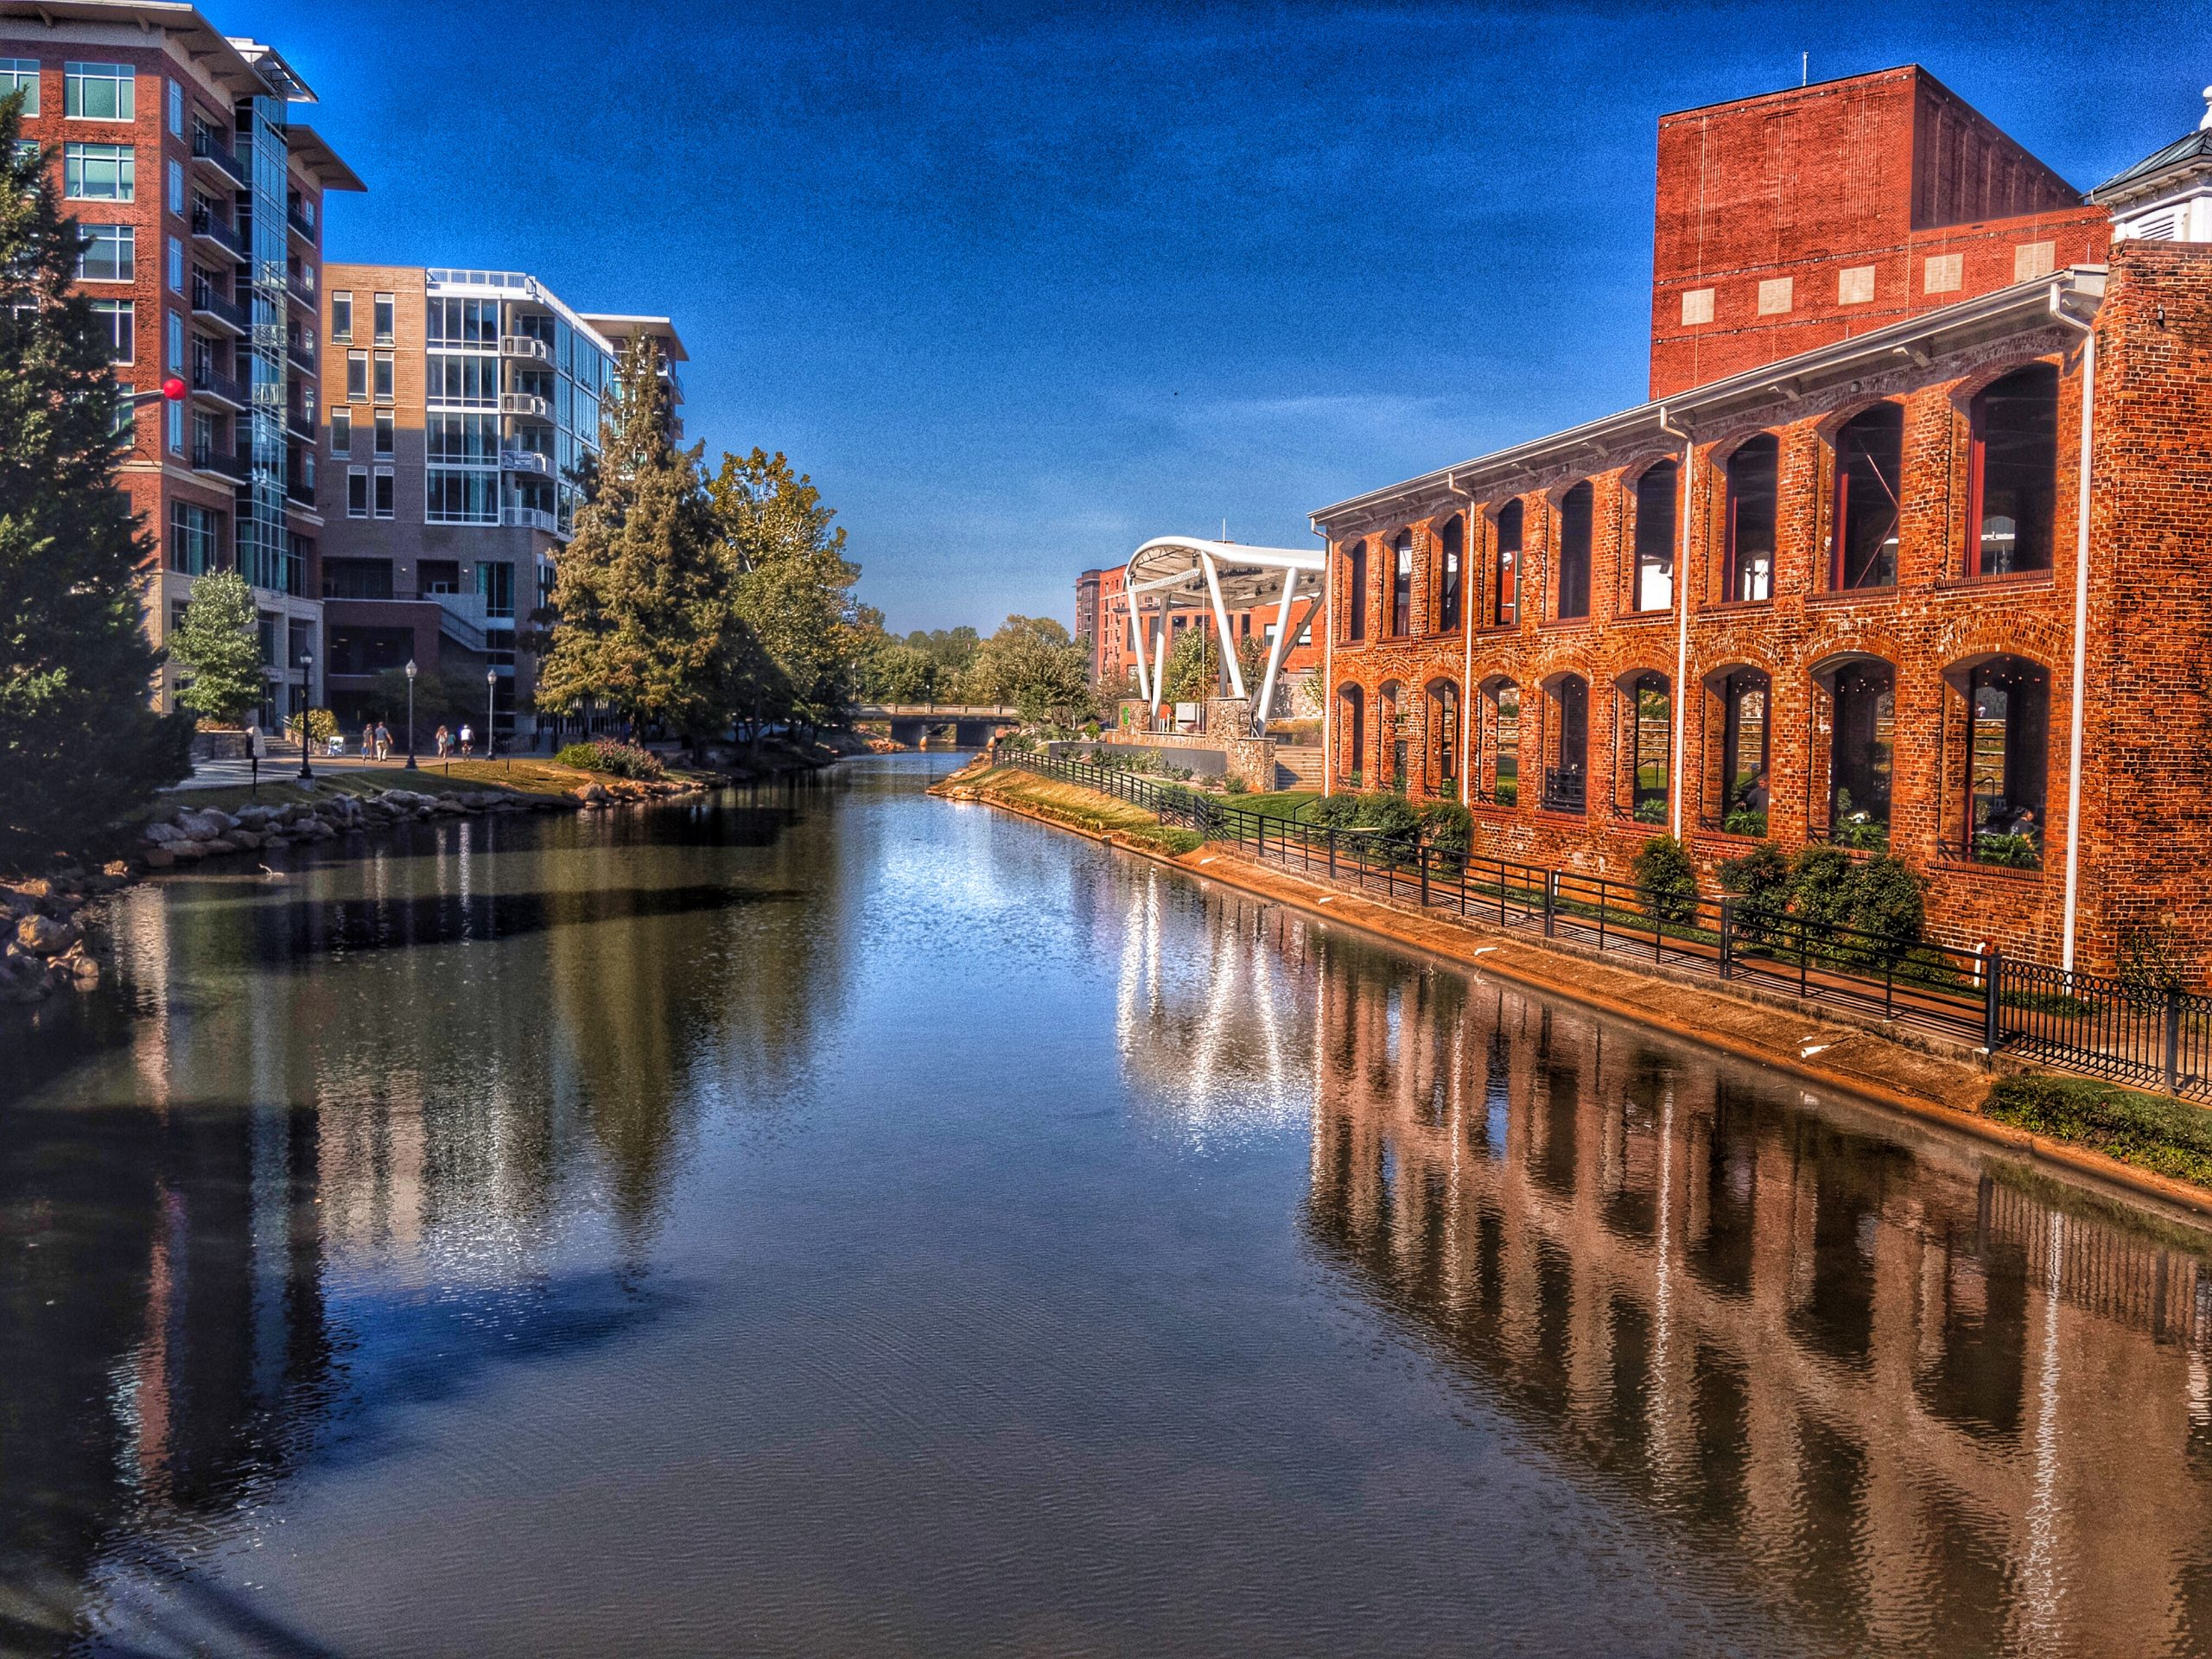 The Reedy River, Greenville, South Carolina